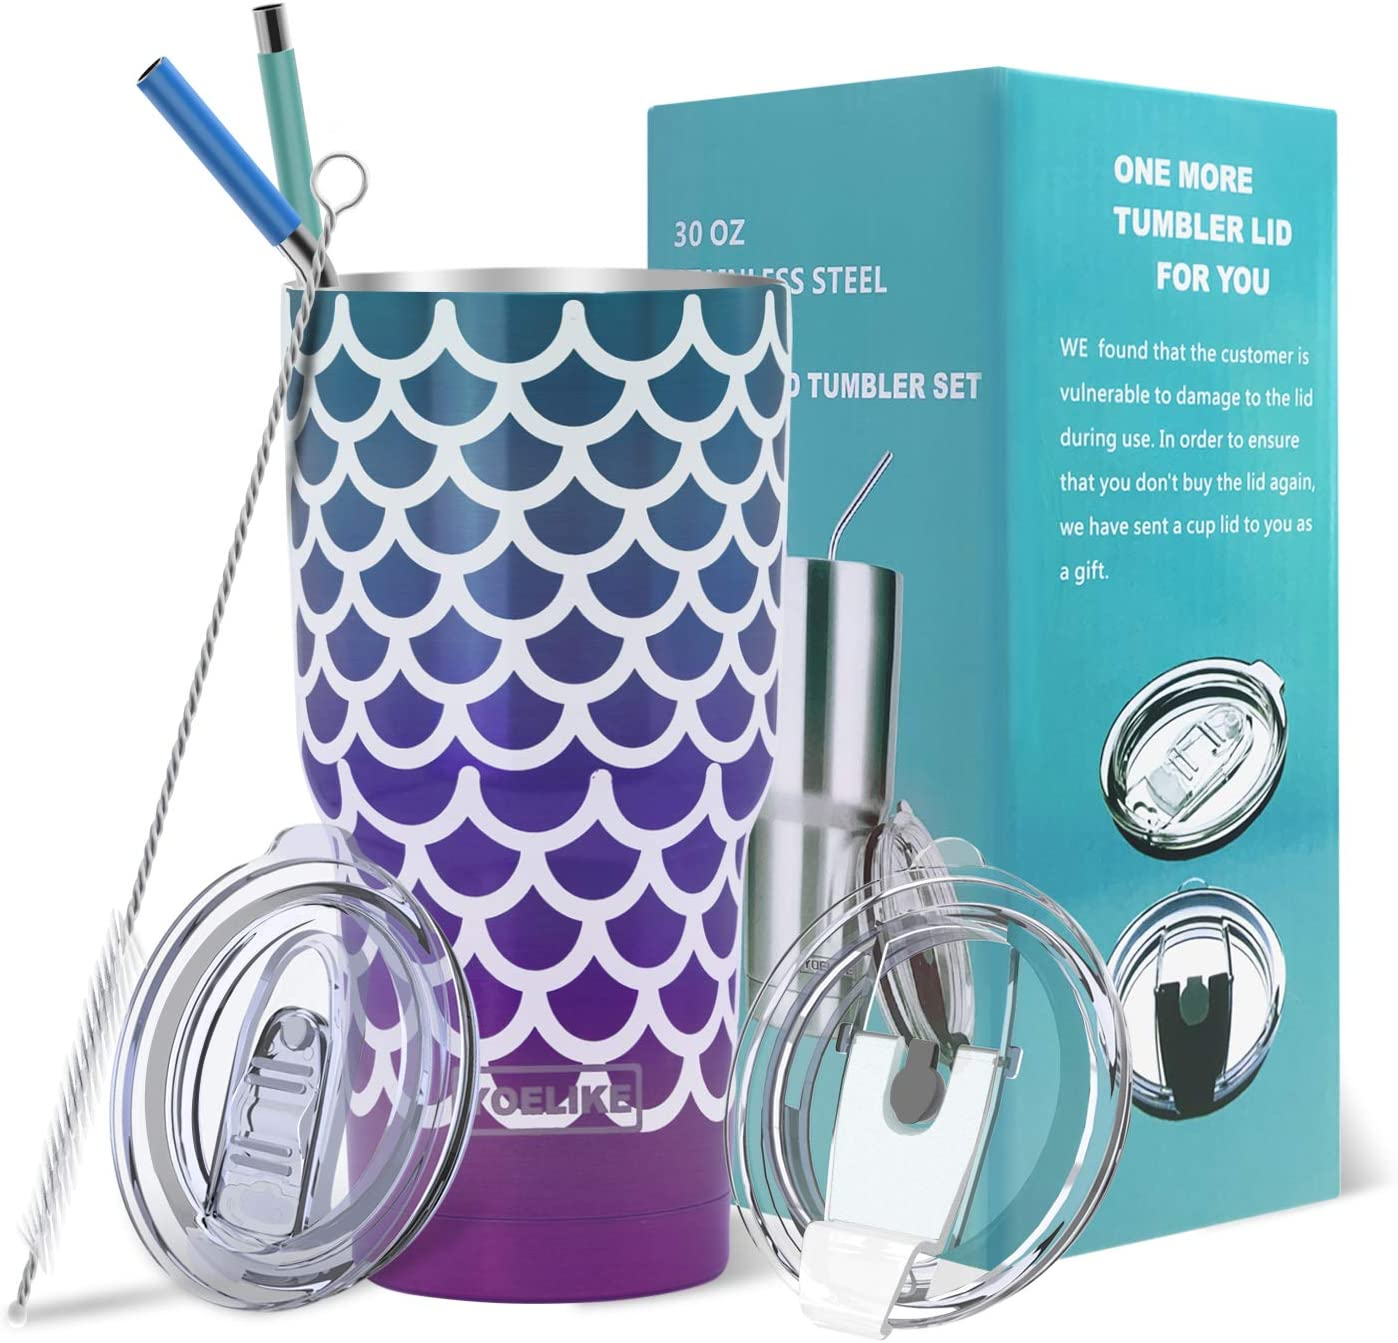 30 oz Stainless Steel Double Wall Vacuum Insulated Mermaid Tumbler